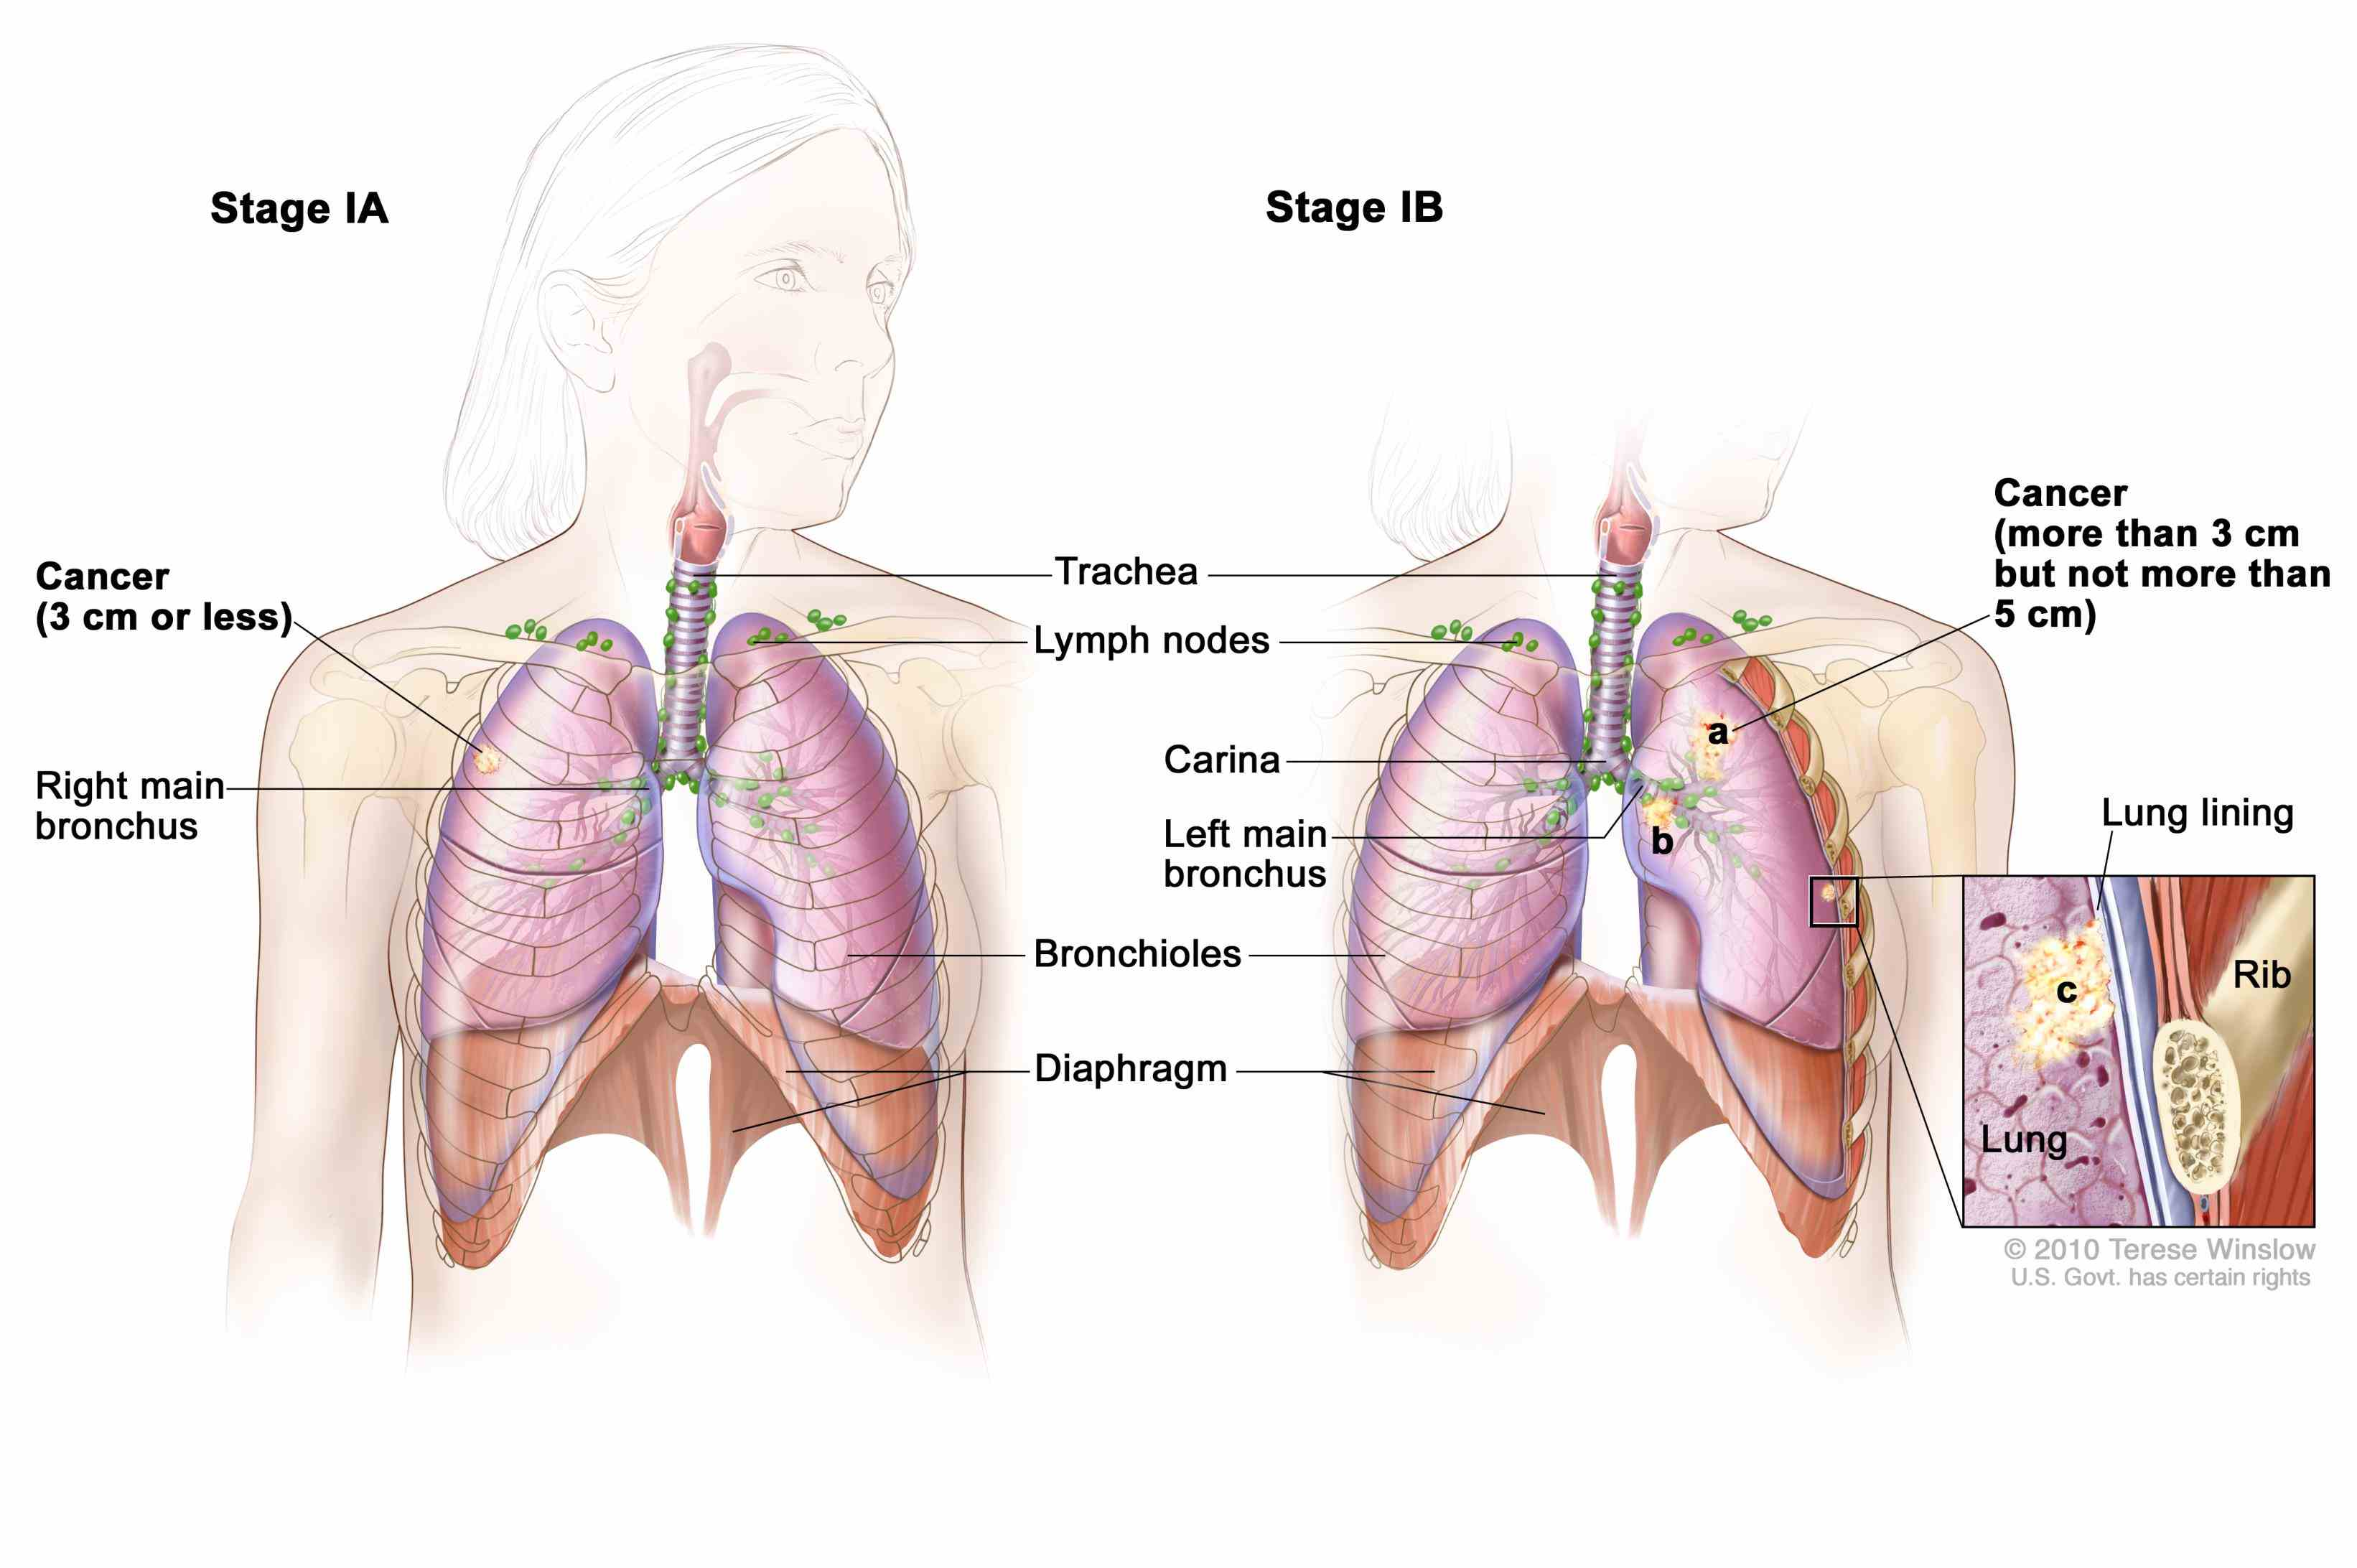 The Lungs are three main types of lung cancer